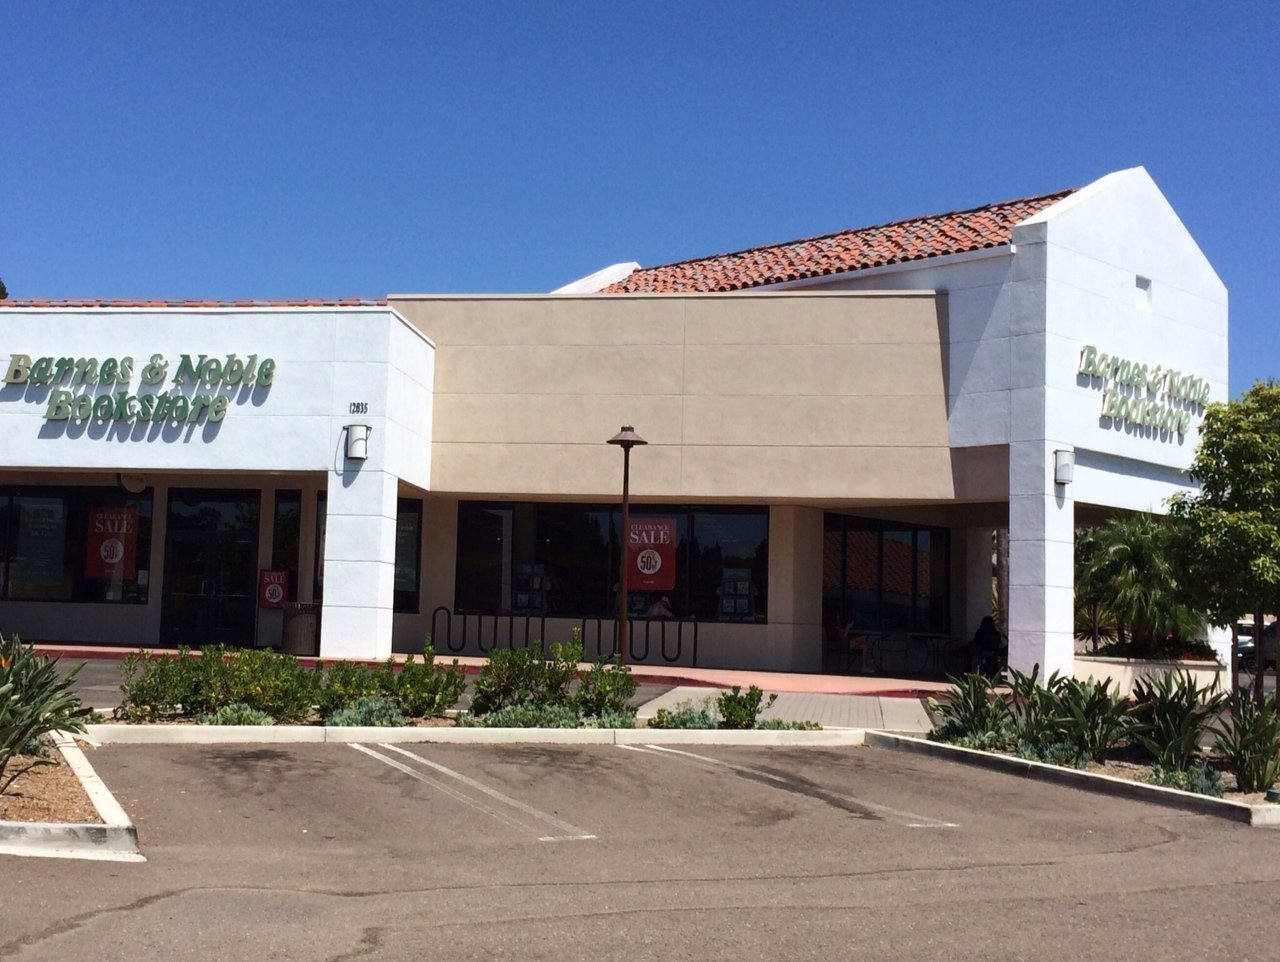 barnes \u0026 noble in carmel valley closes after 21 years del mar times